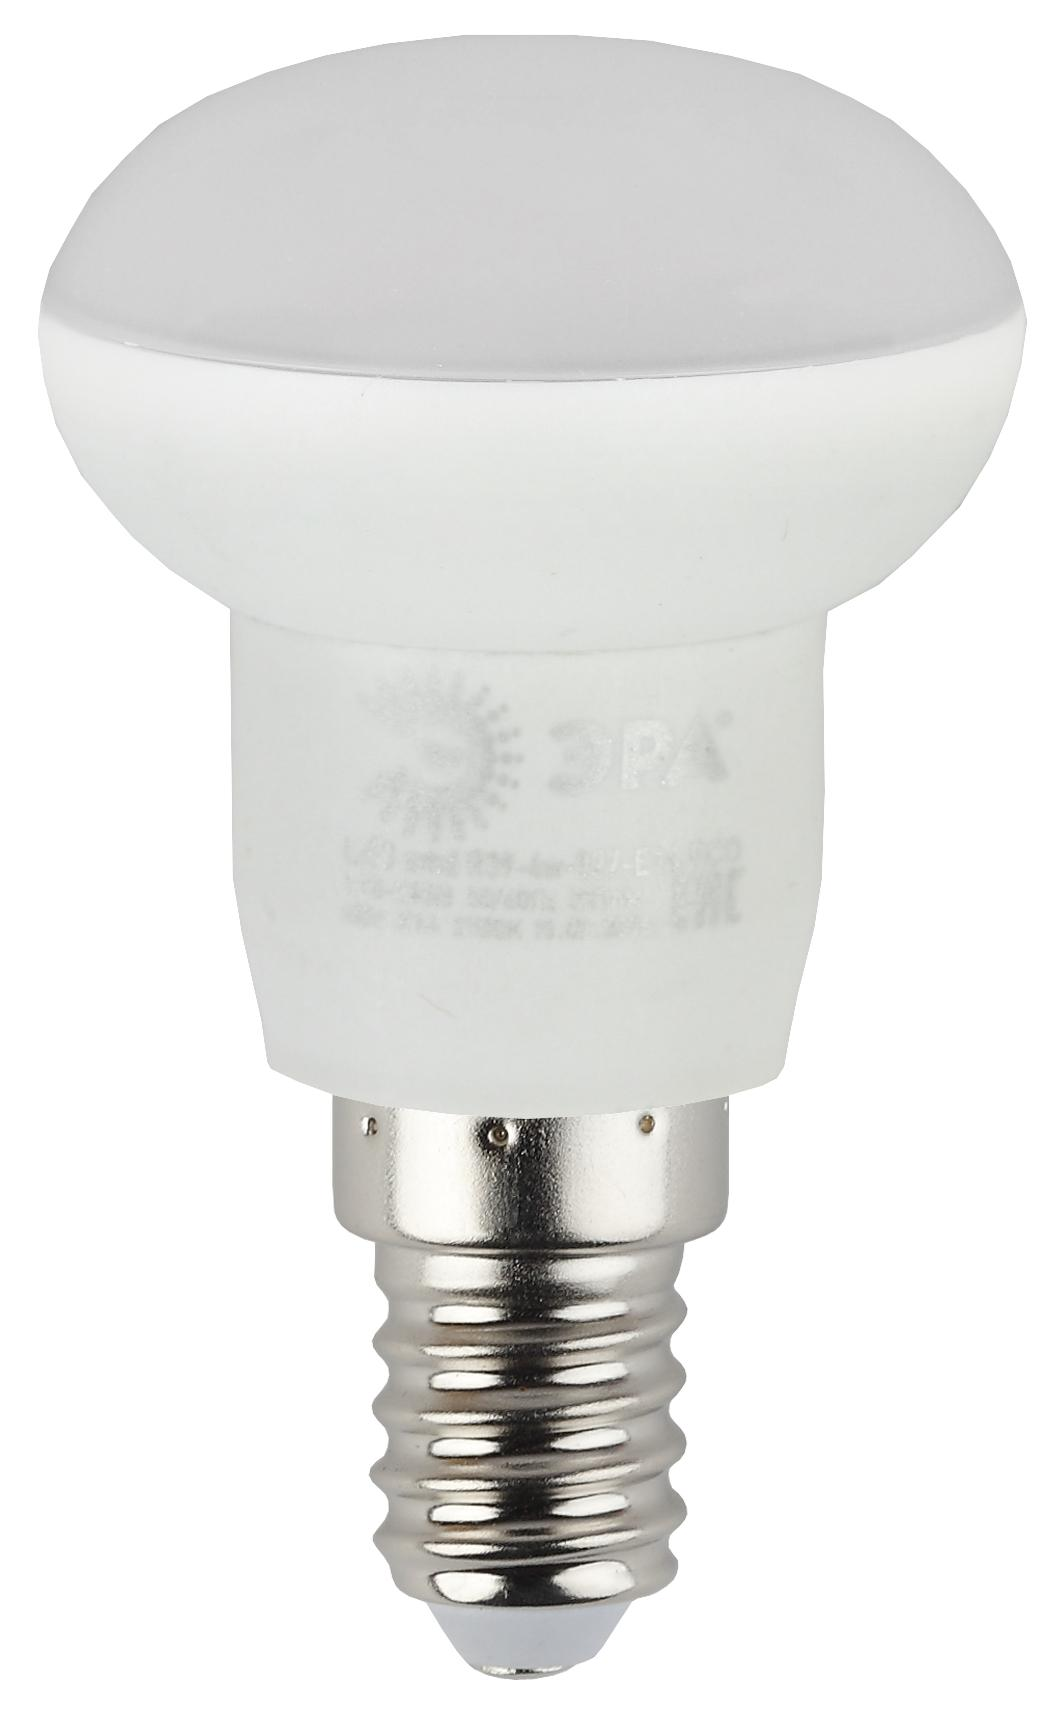 Лампа светодиодная ЭРА Led smd r39-4w-827-e14 eco gu10 4w 60x3528 smd led 240 lumen 3500k warm white light bulb ac 85 265v